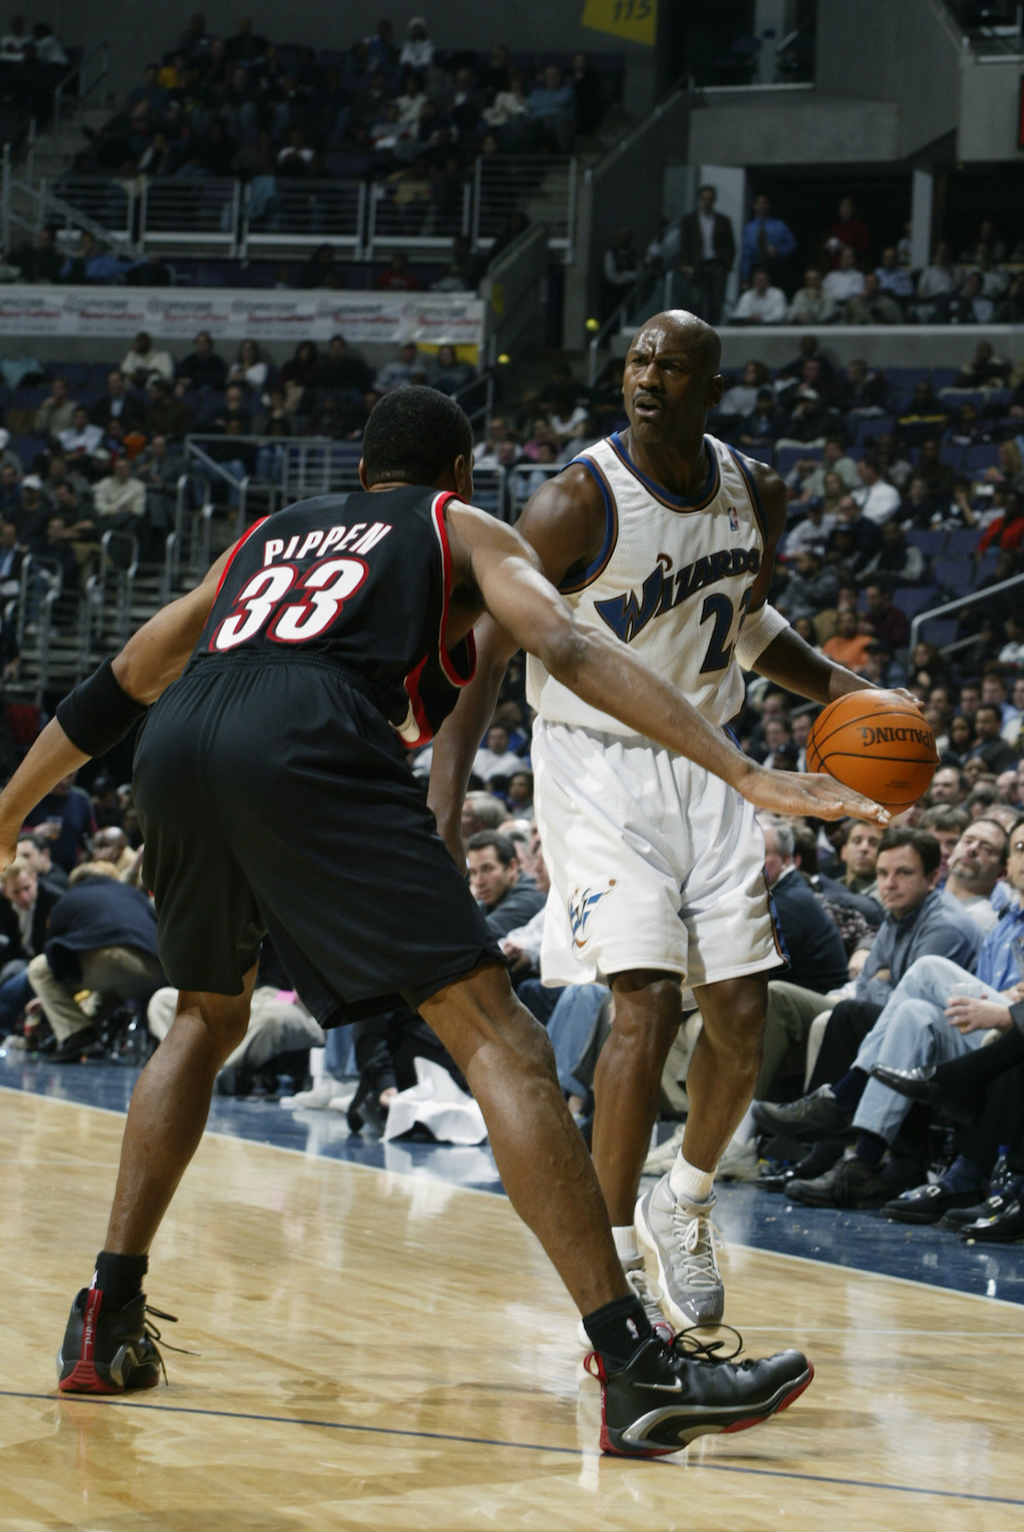 WASHINGTON - DECEMBER 10:  Guard Michael Jordan #23 of the Washington Wizards looks to play the ball as guard Scottie Pippen #33 of the Portland Trail Blazers defends during the game at MCI Center on December 10, 2002 in Washington, DC.  The Trail Blazers won 98-79.  NOTE TO USER: User expressly acknowledges and agrees that, by downloading and/or using this Photograph, User is consenting to the terms and conditions of the Getty Images License Agreement.  Mandatory copyright notice: Copyright 2002 NBAE  (Photo by: Noren Trotman/NBAE/Getty Images)